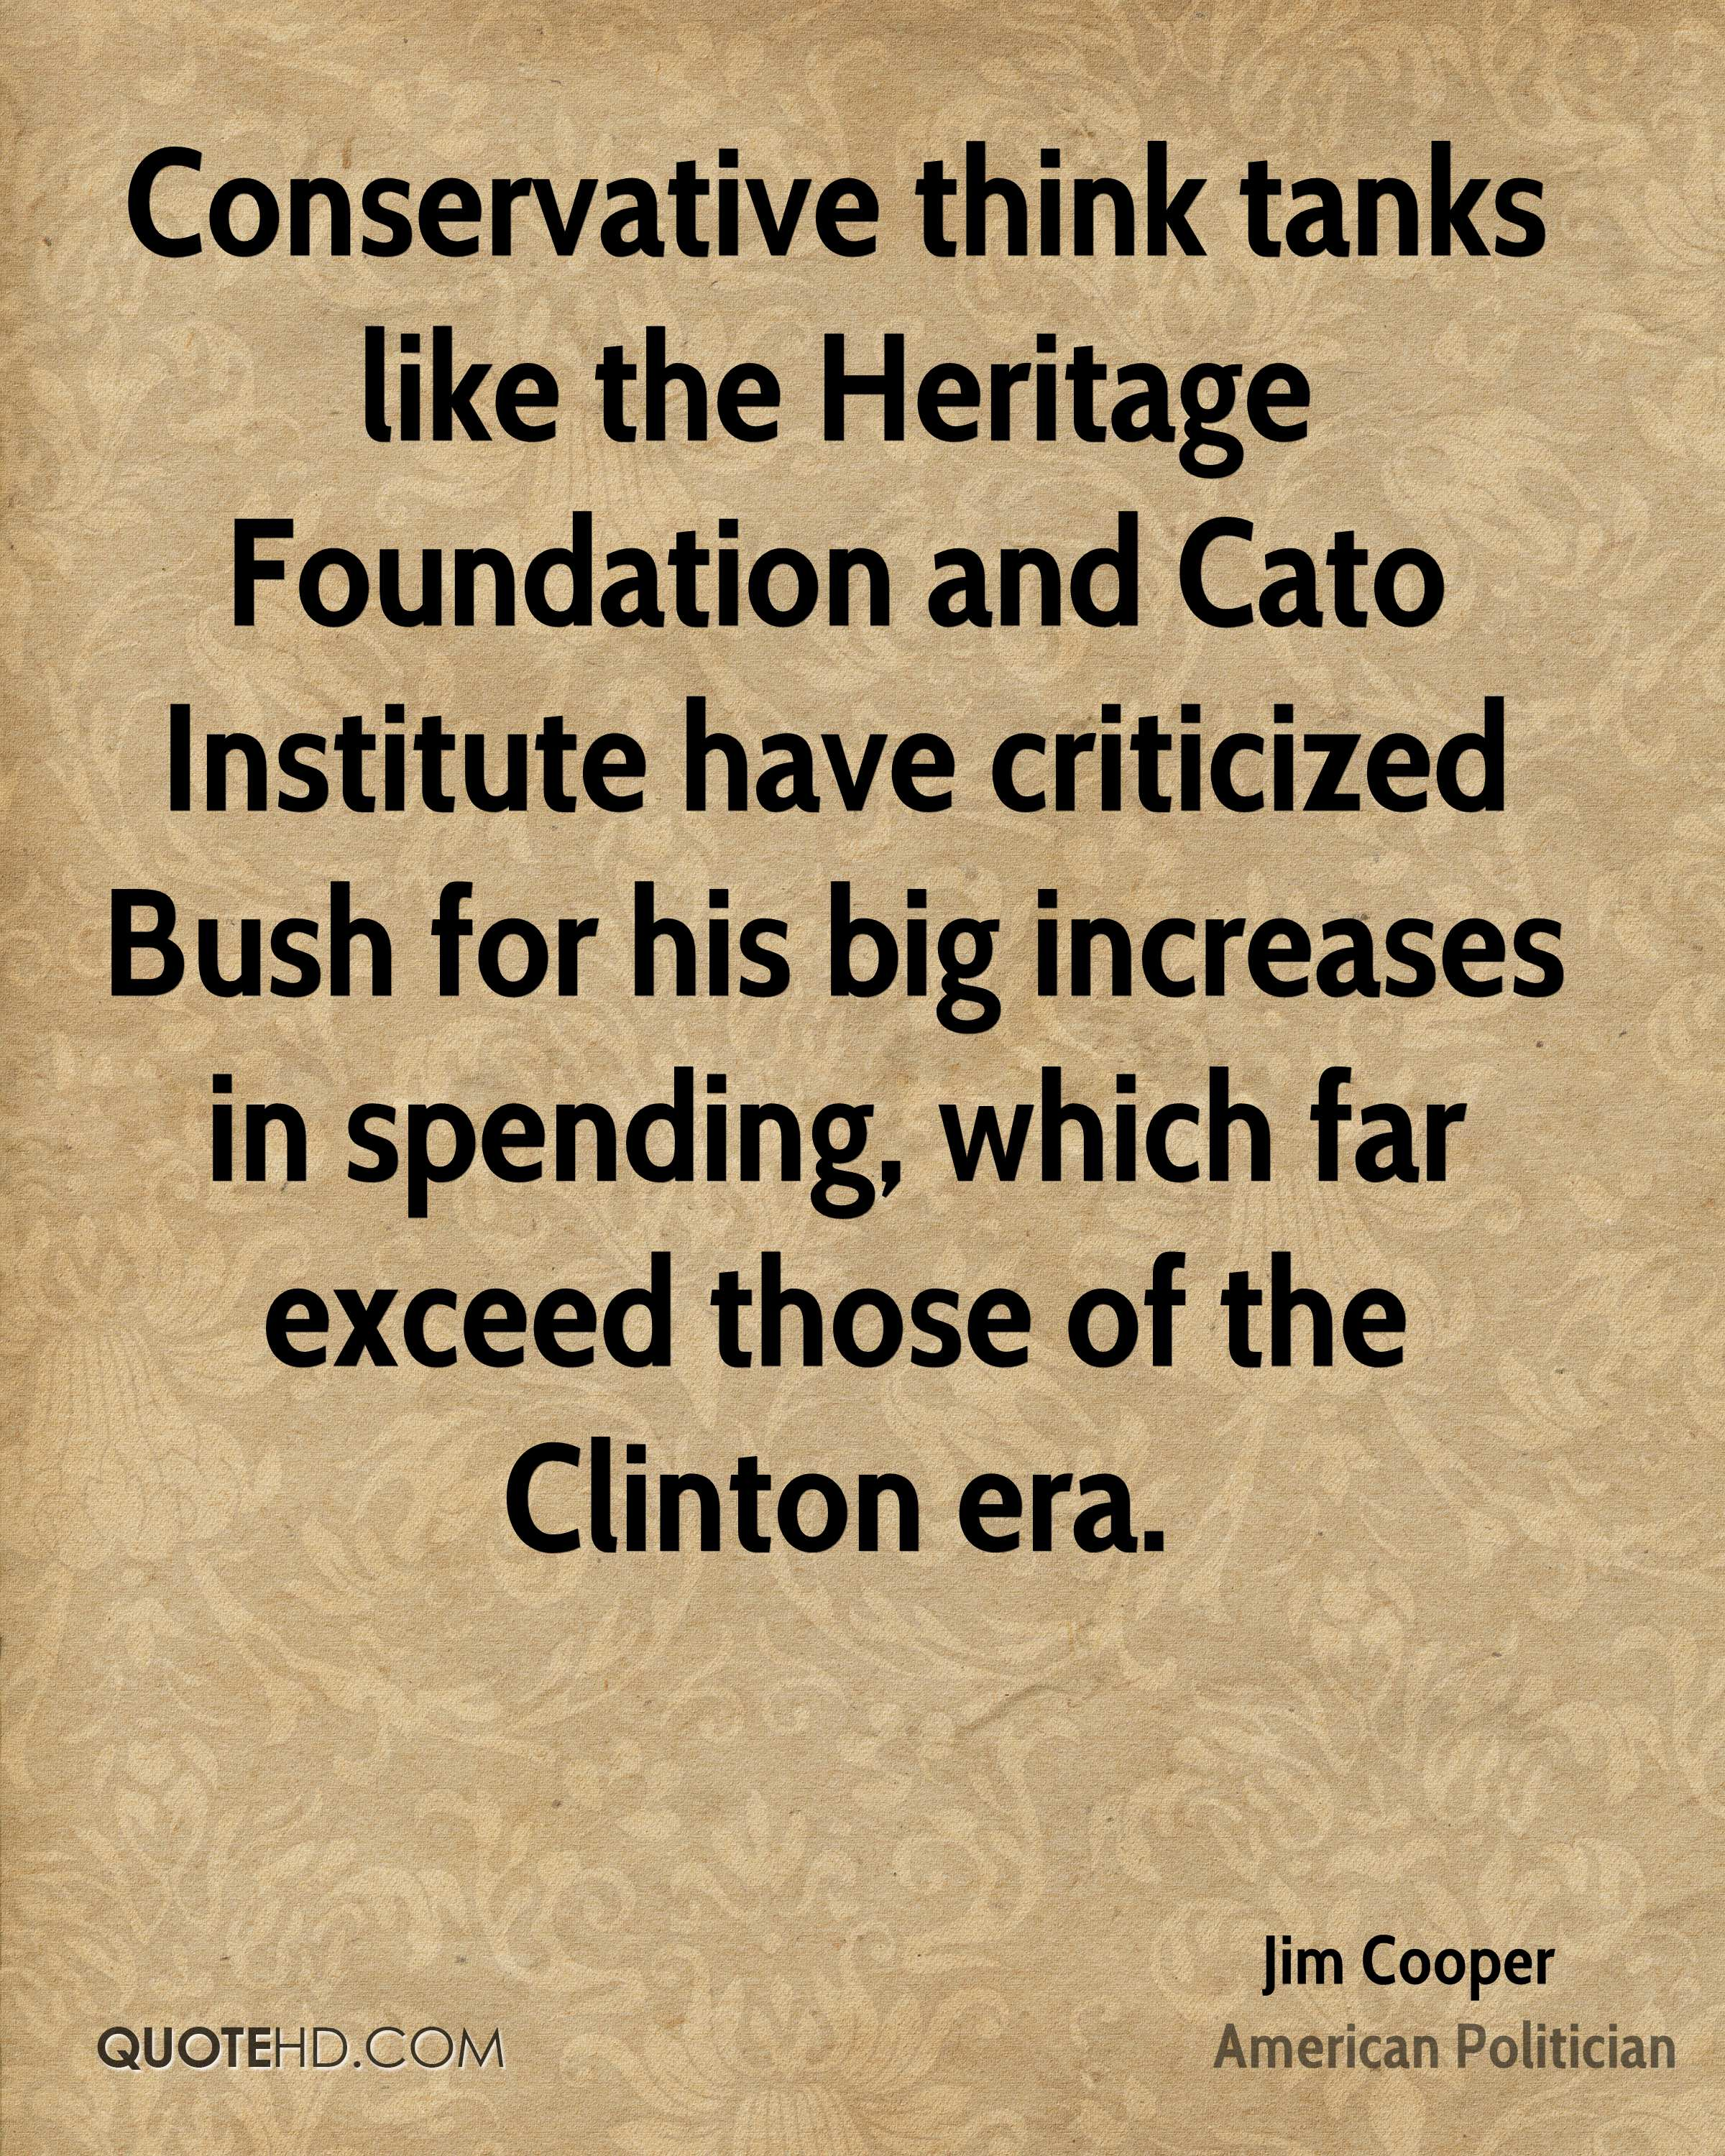 Conservative think tanks like the Heritage Foundation and Cato Institute have criticized Bush for his big increases in spending, which far exceed those of the Clinton era.